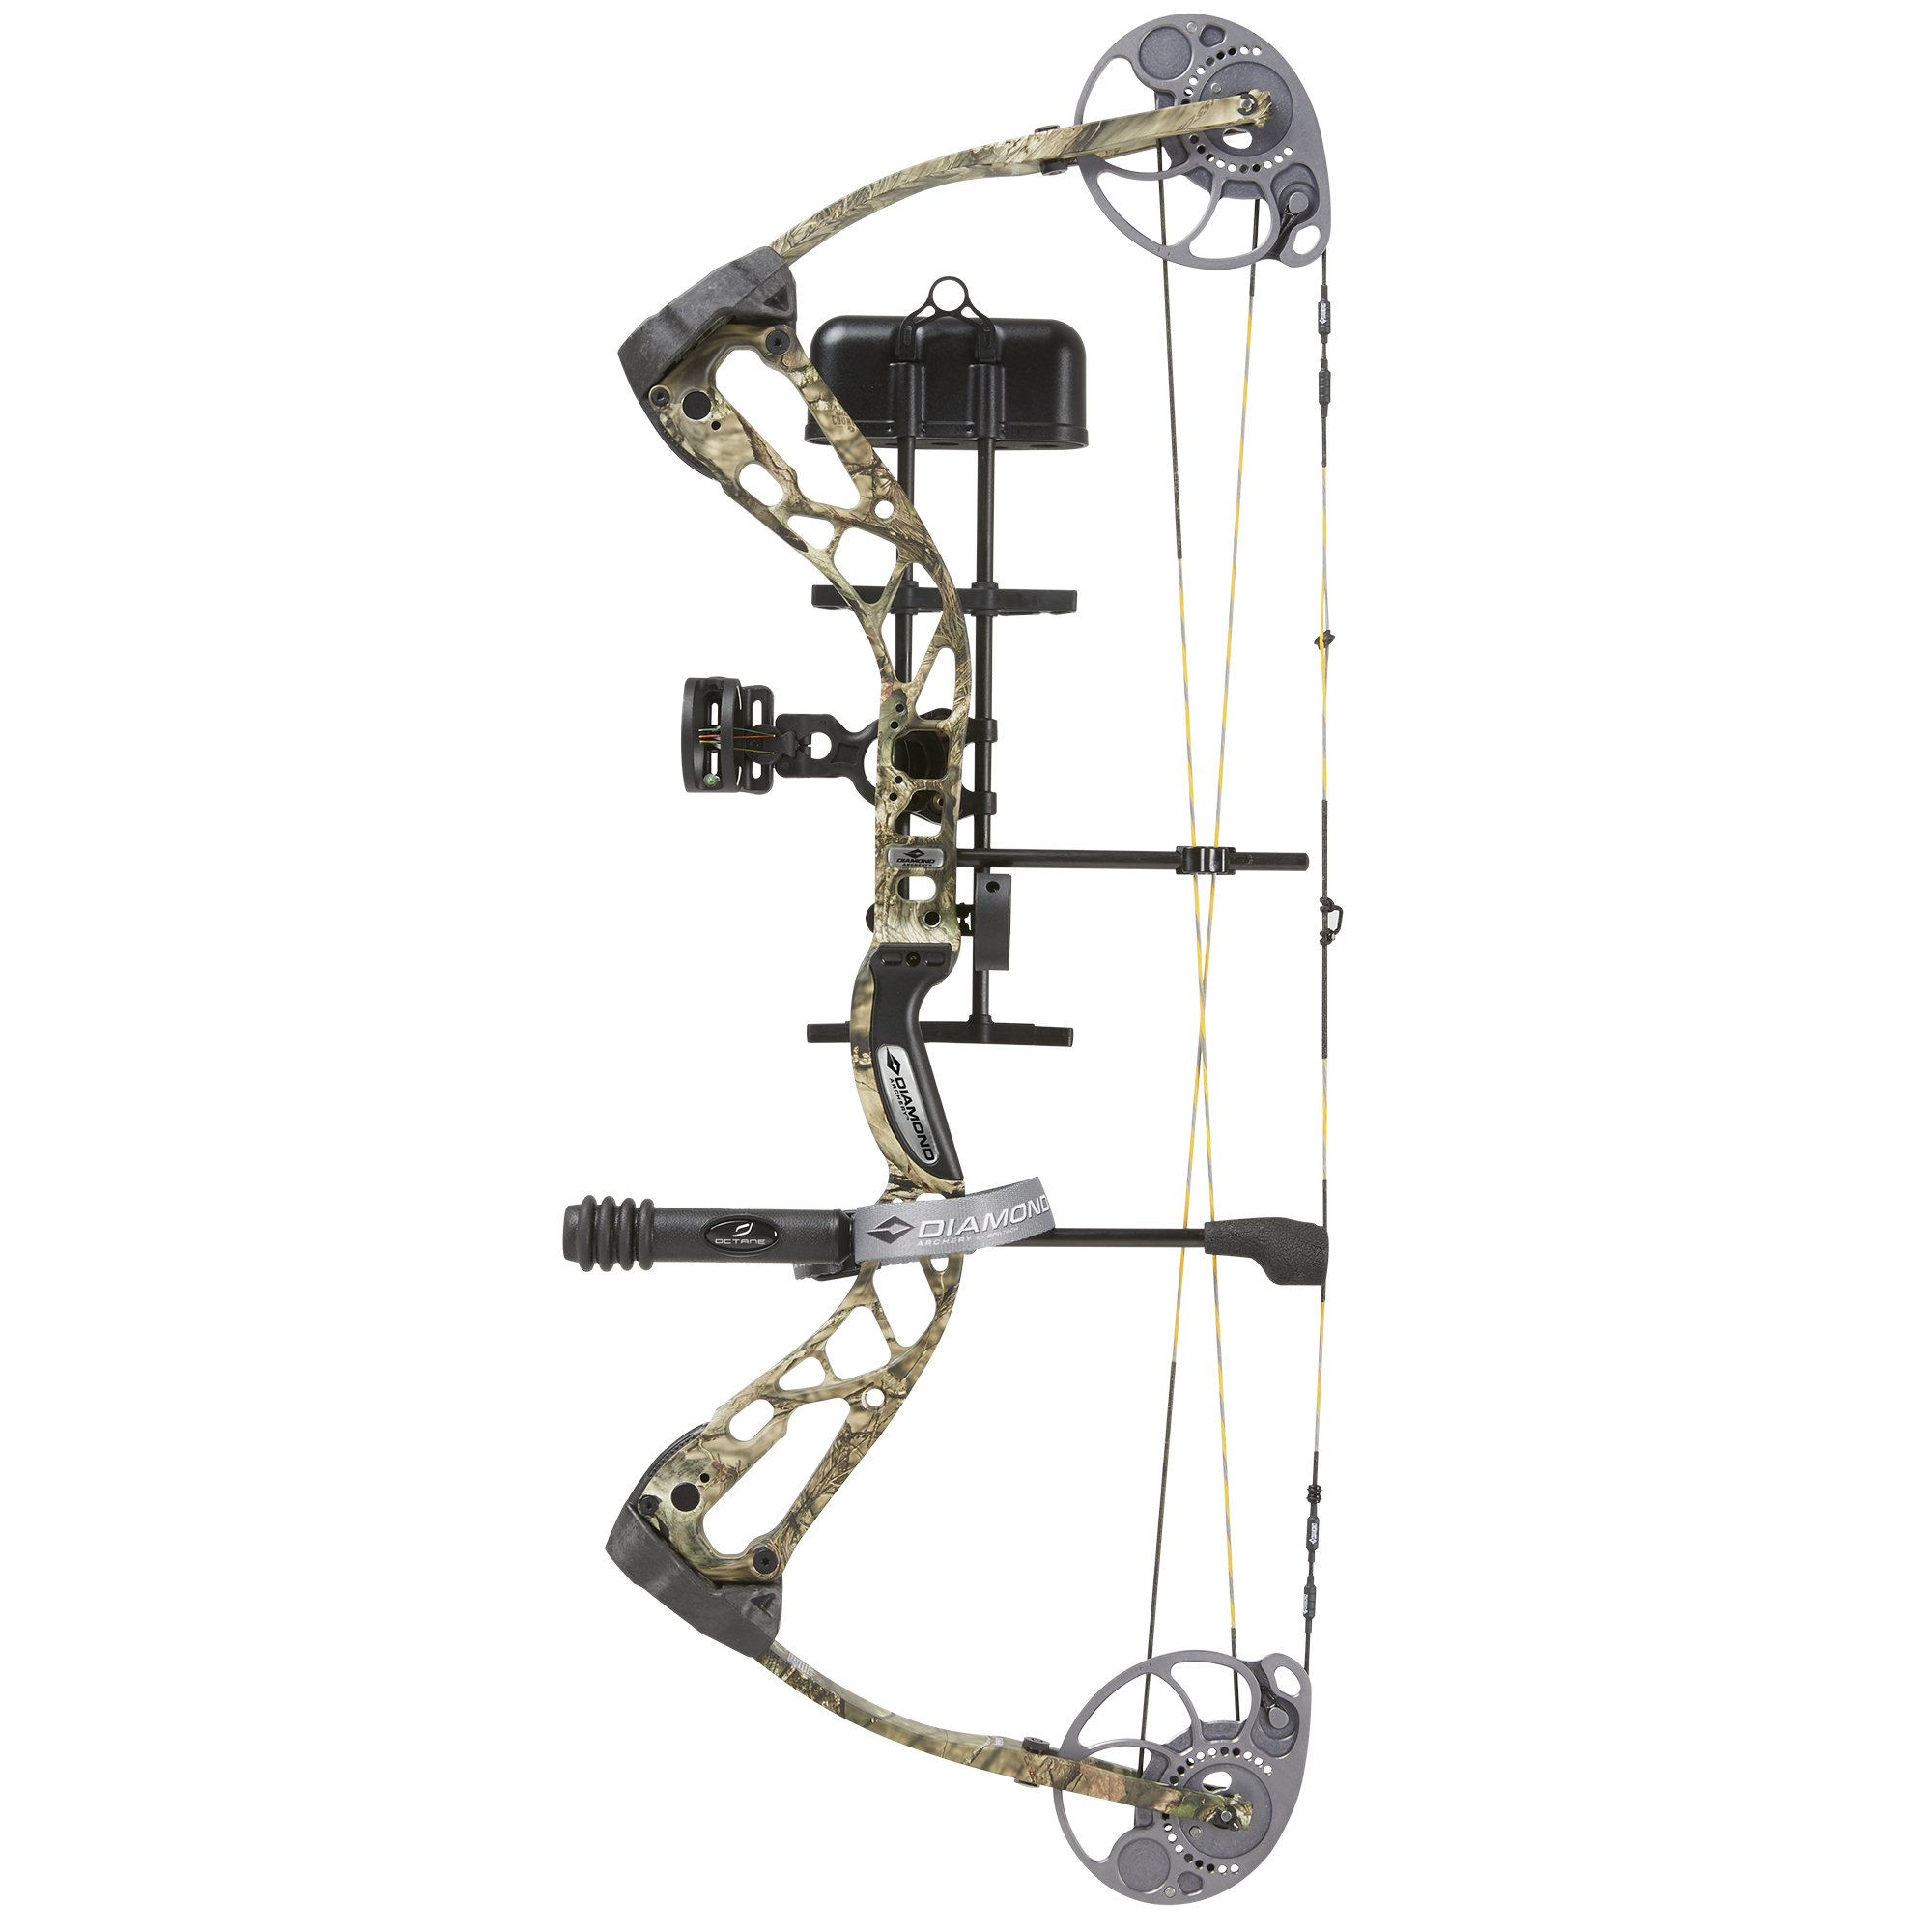 BowTech Diamond Archery Edge SB-1 Compound Bow Package, RH, Camo